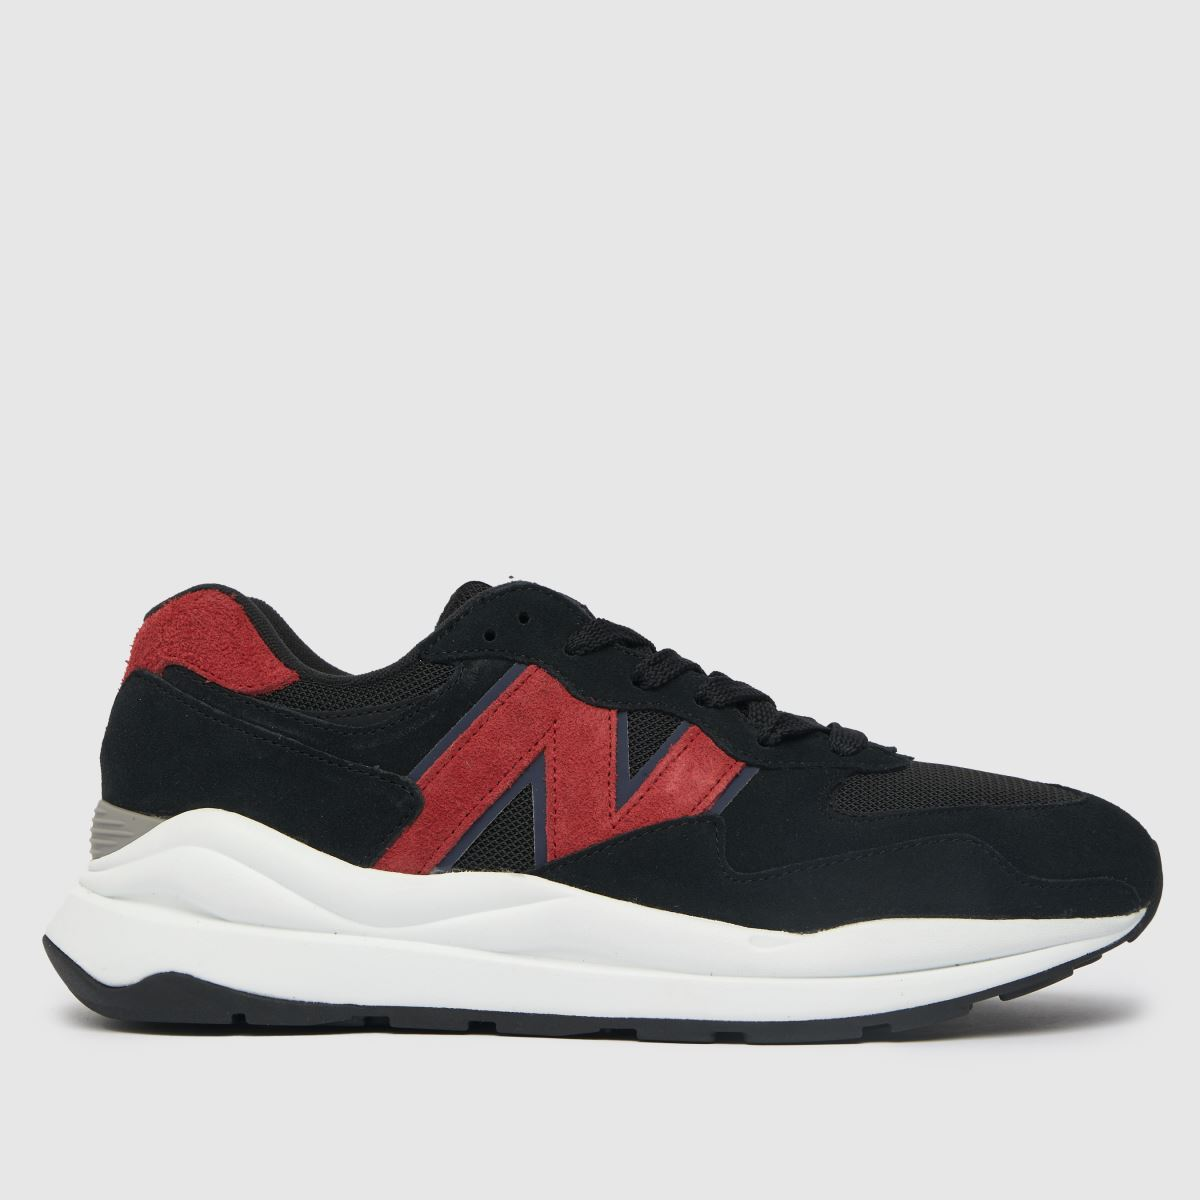 New Balance Black & Red 57/40 Trainers